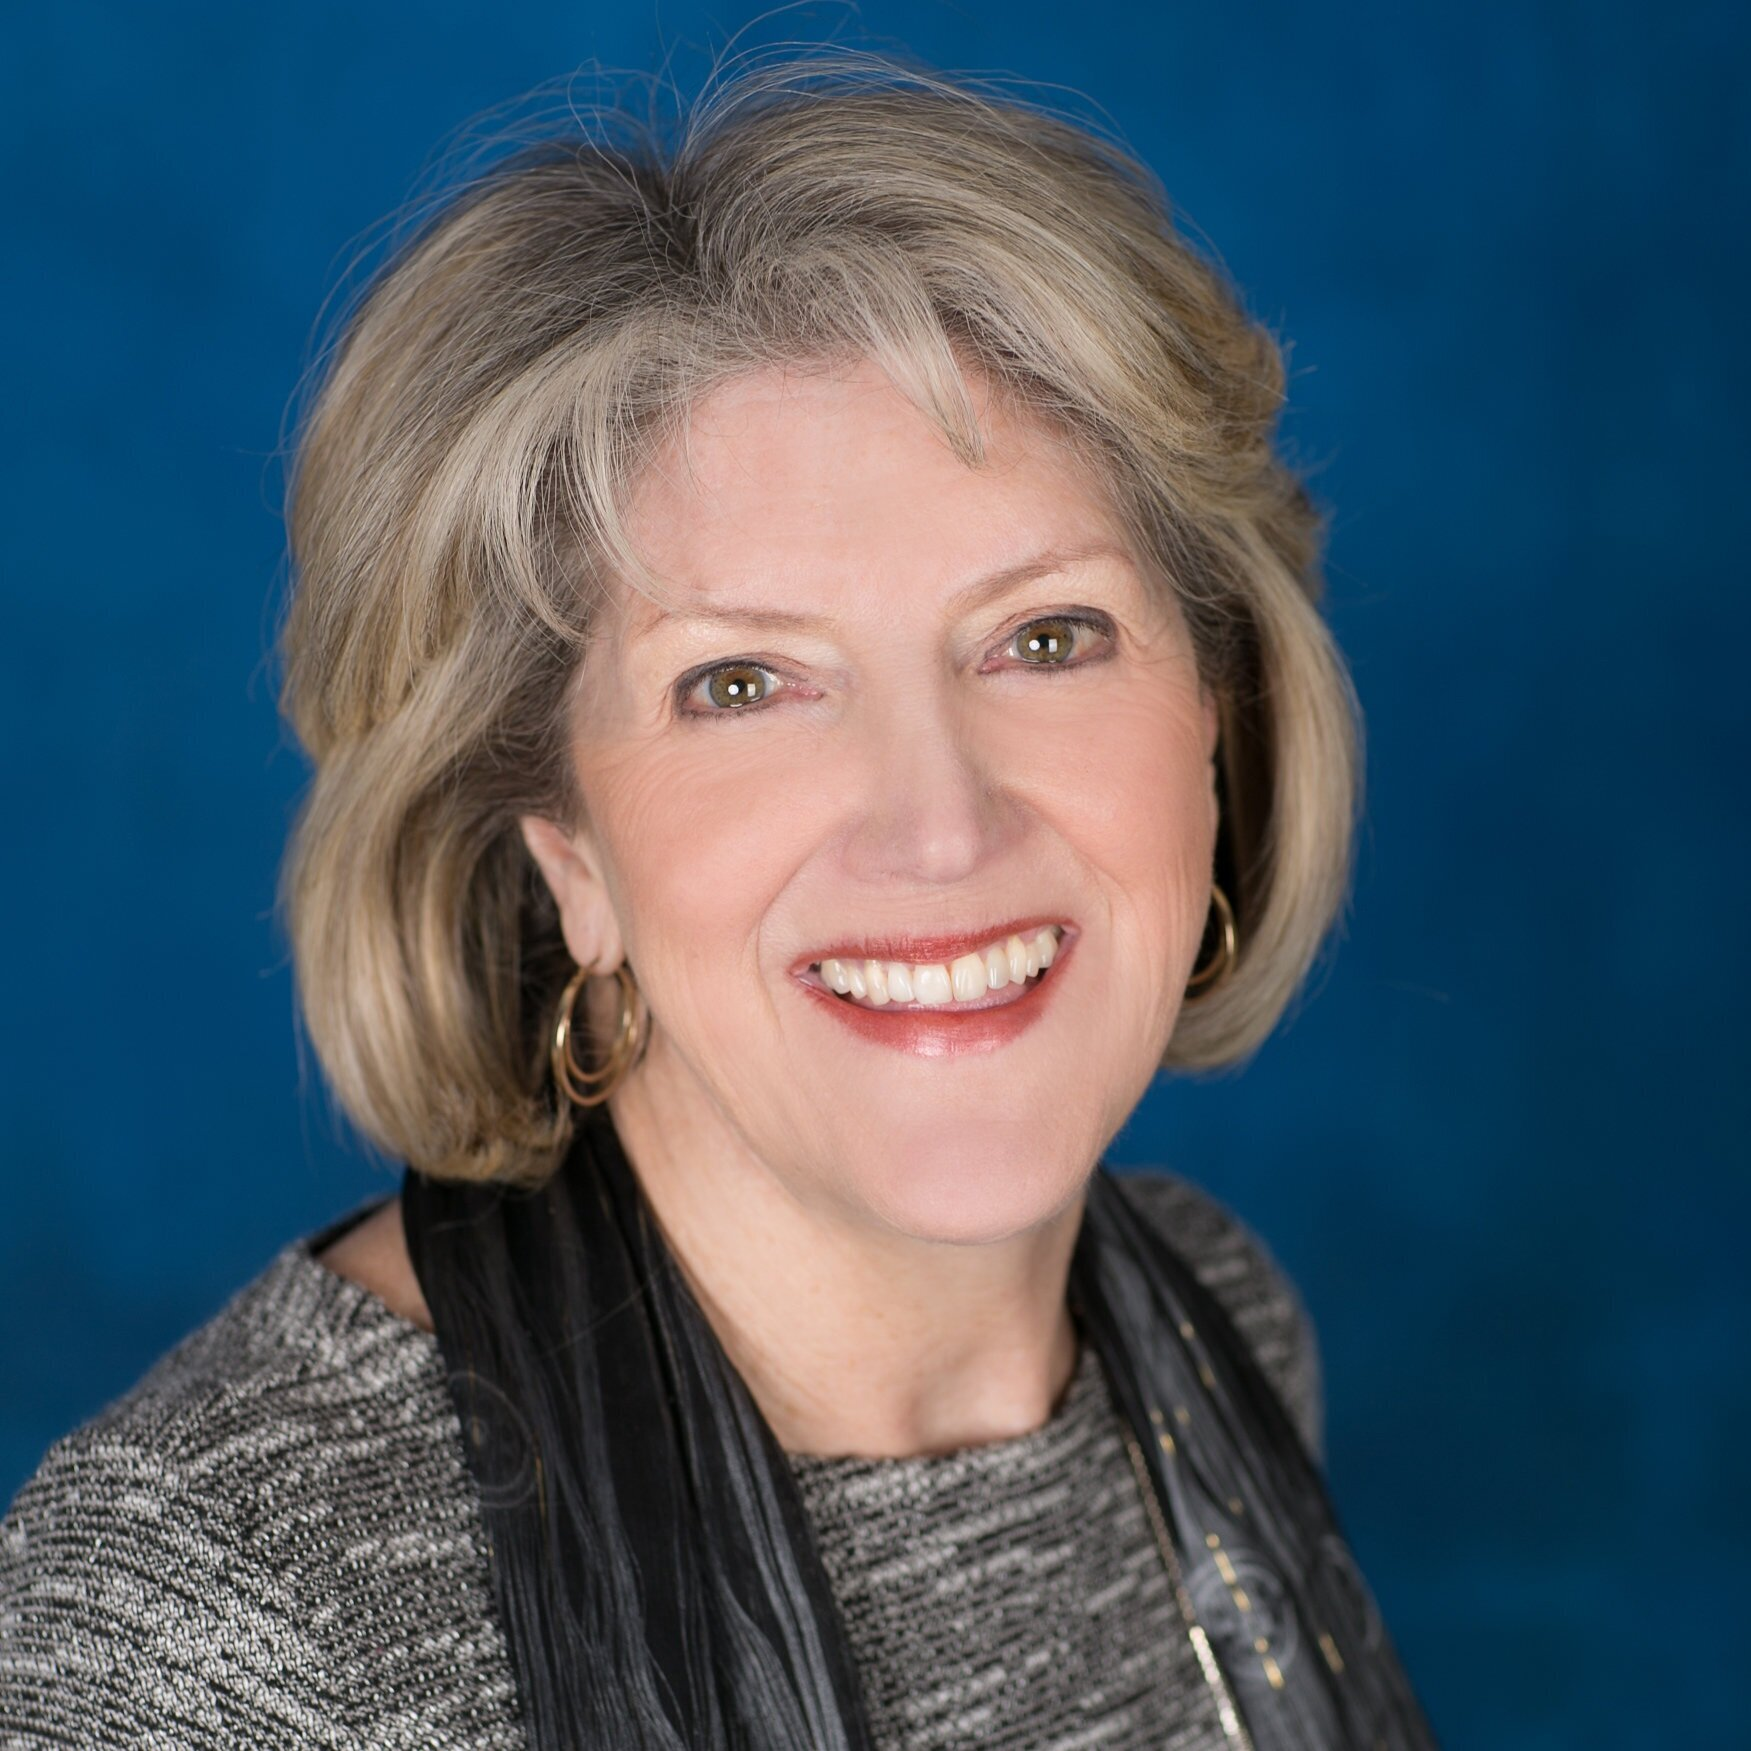 AT LARGE EC DIRECTOR - Patti MacJennettSenior Vice President, Business AffairsLos Angeles Tourism & Convention Board